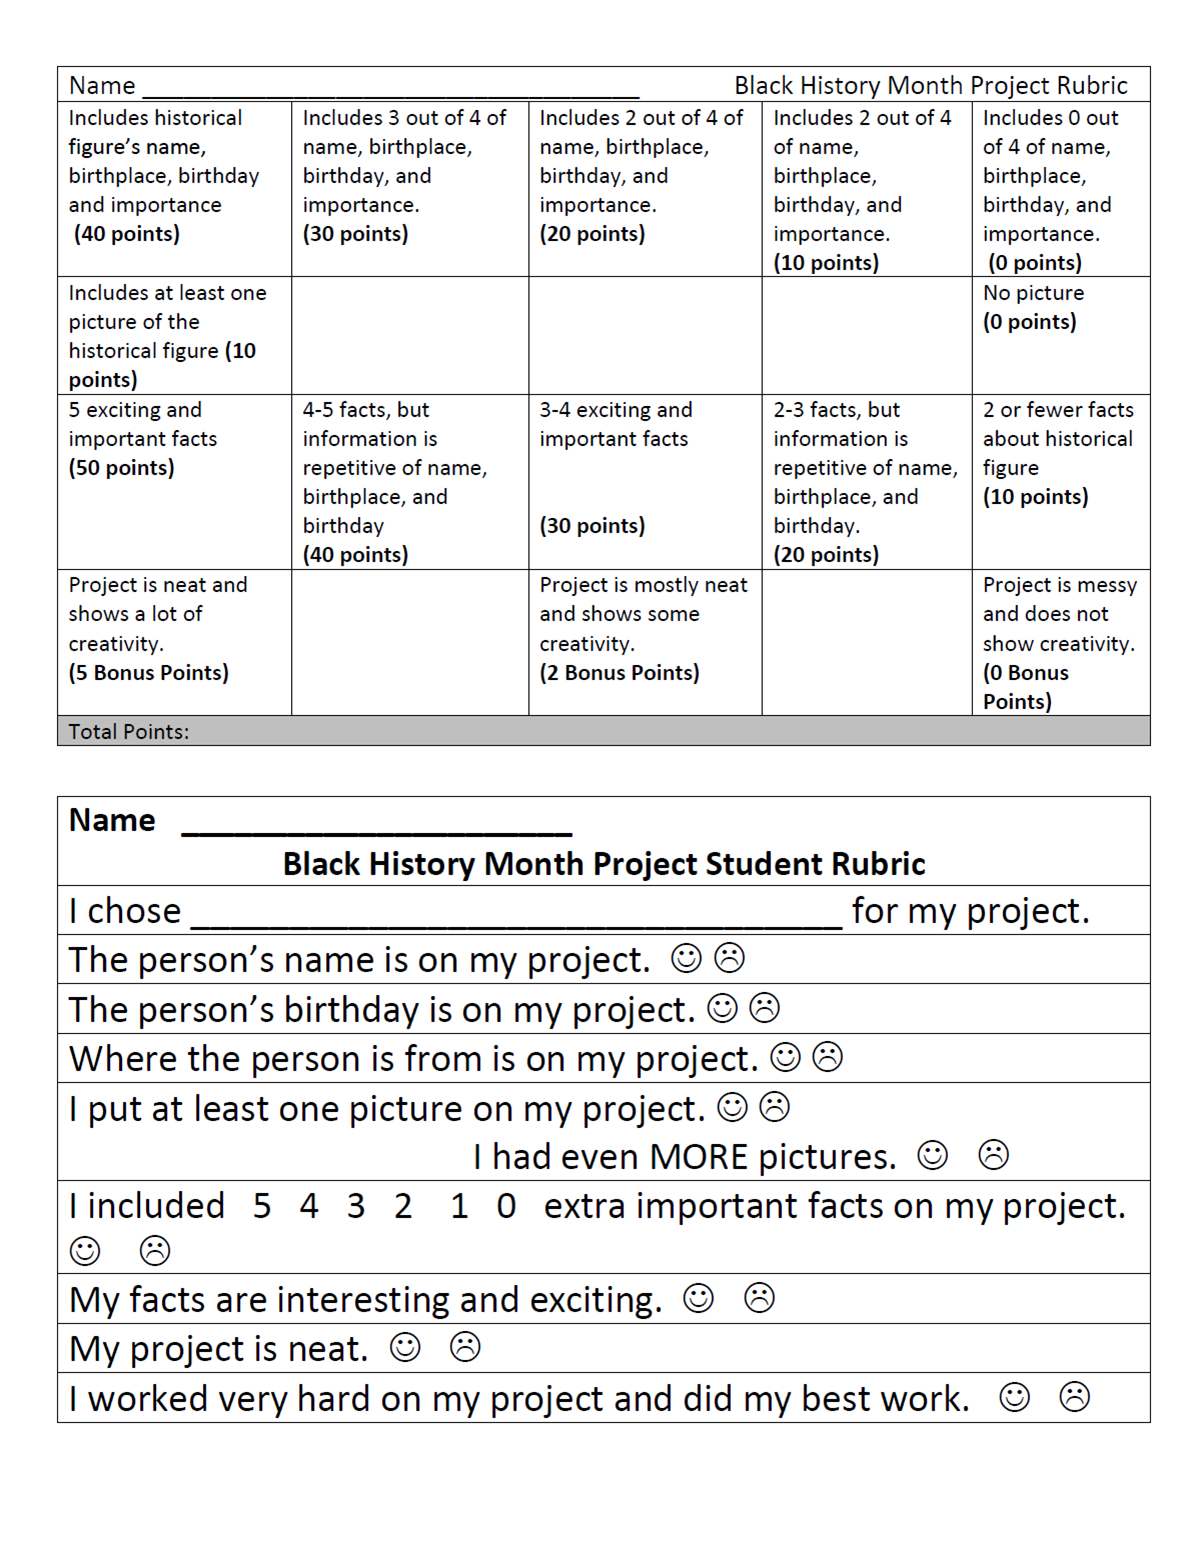 Black History Month Project Rubric